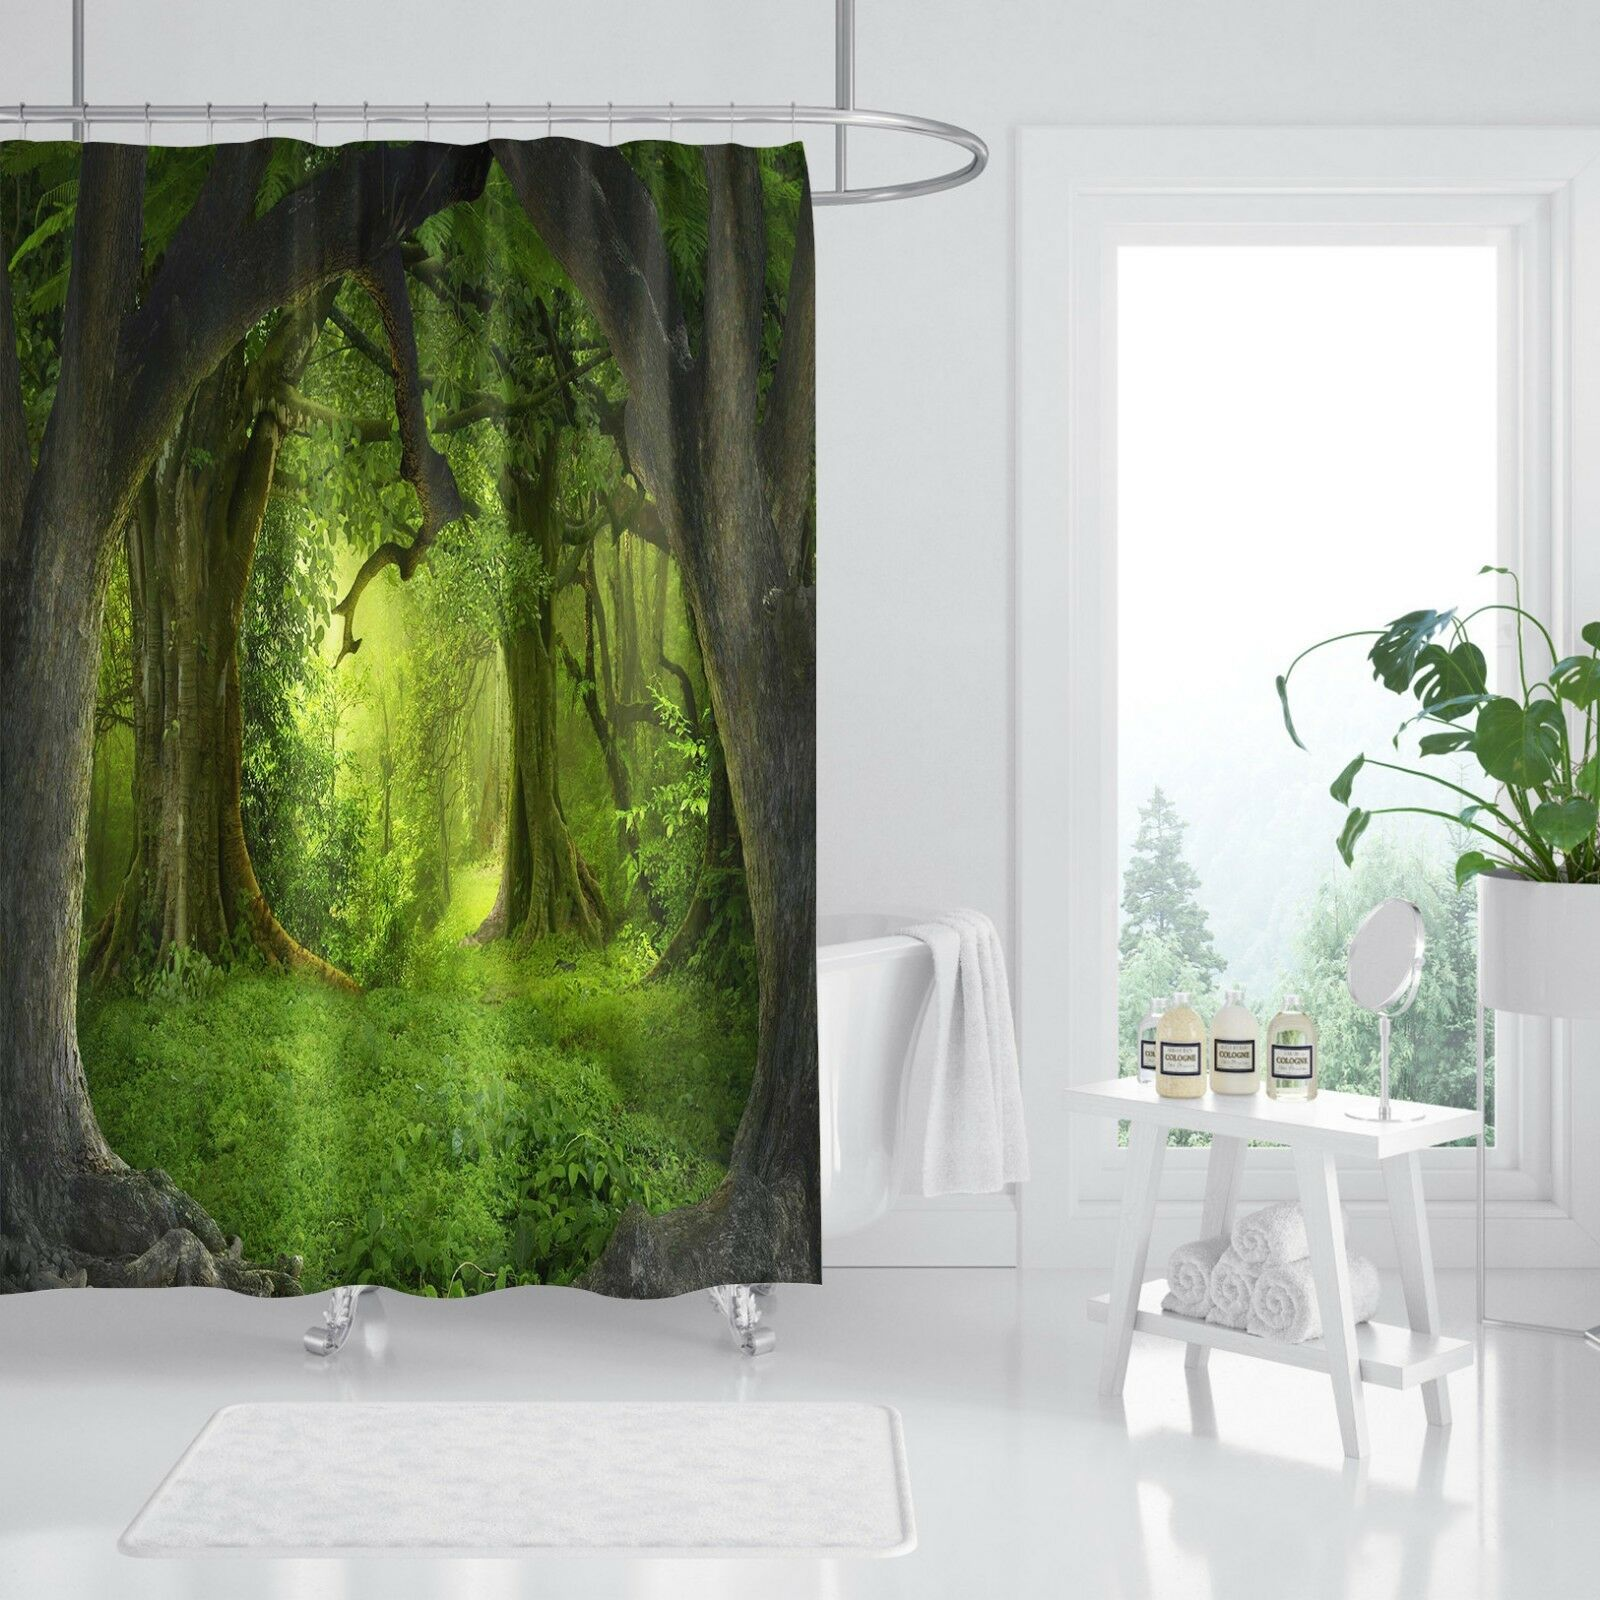 3D Wiese Baum 68 Duschvorhang Wasserdichte Faser Bad Daheim Windows Toilette DE | Trendy